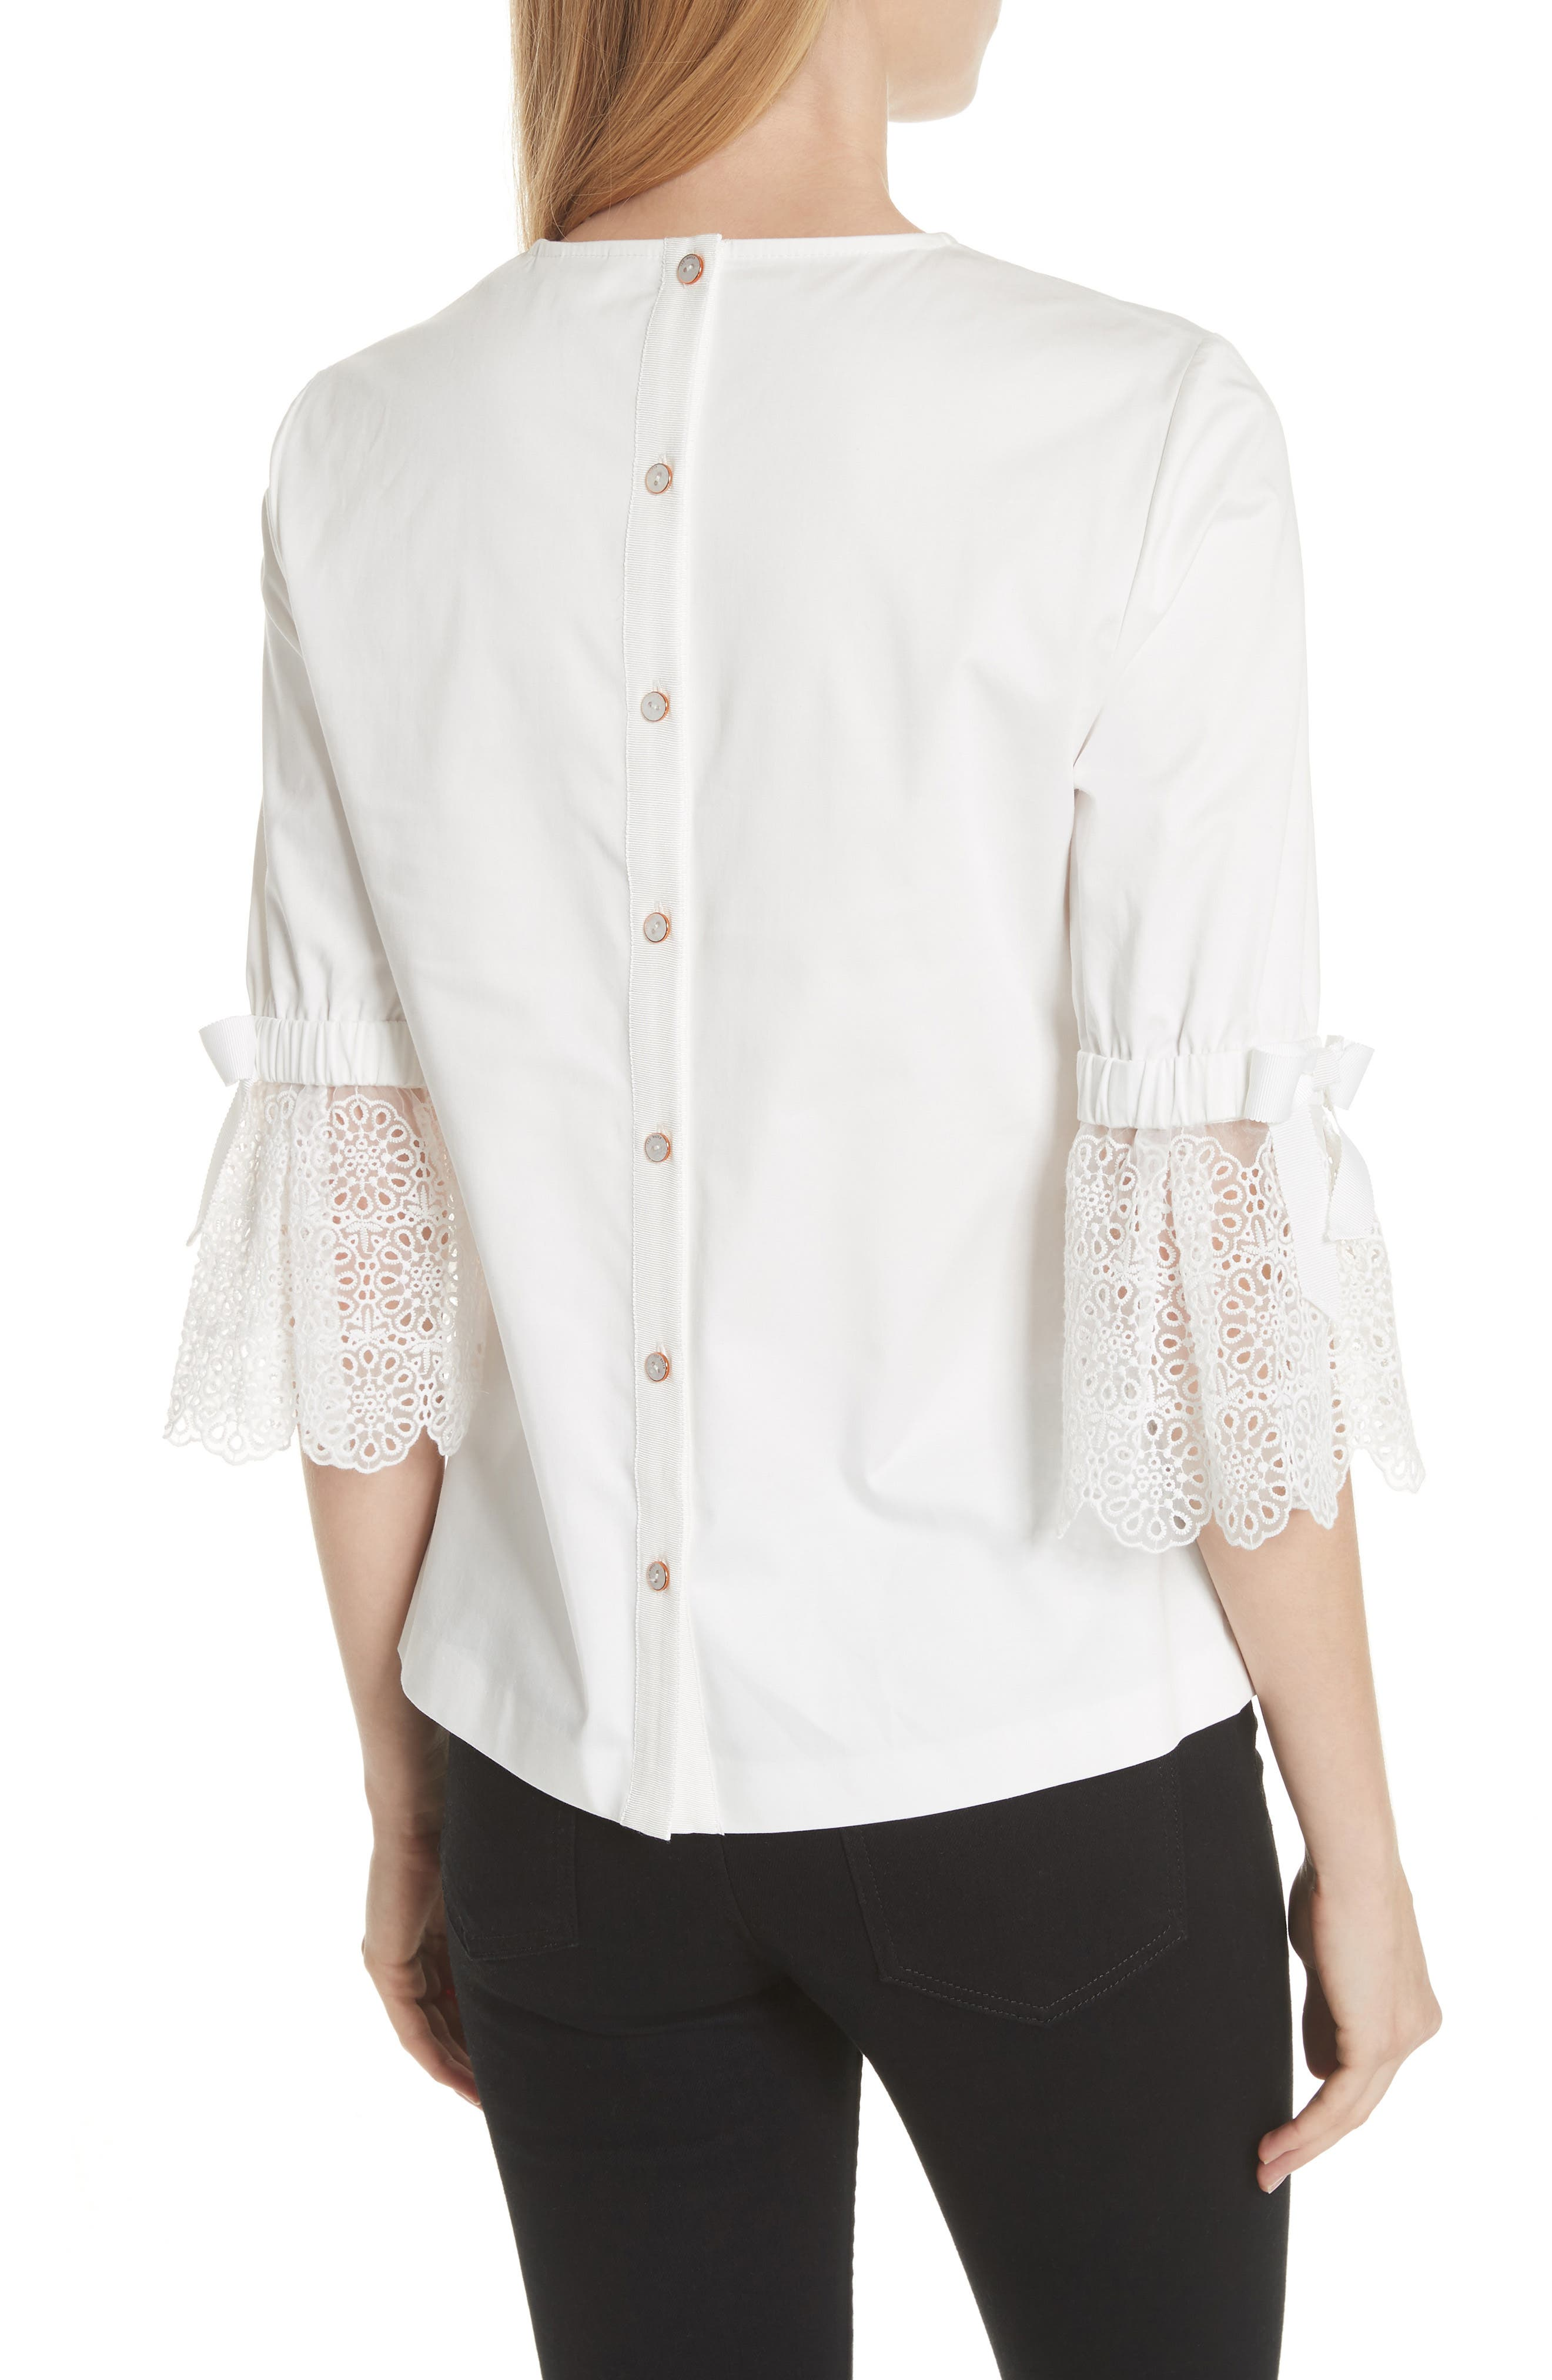 Broderie Lace Bow Sleeve Top,                             Alternate thumbnail 2, color,                             110